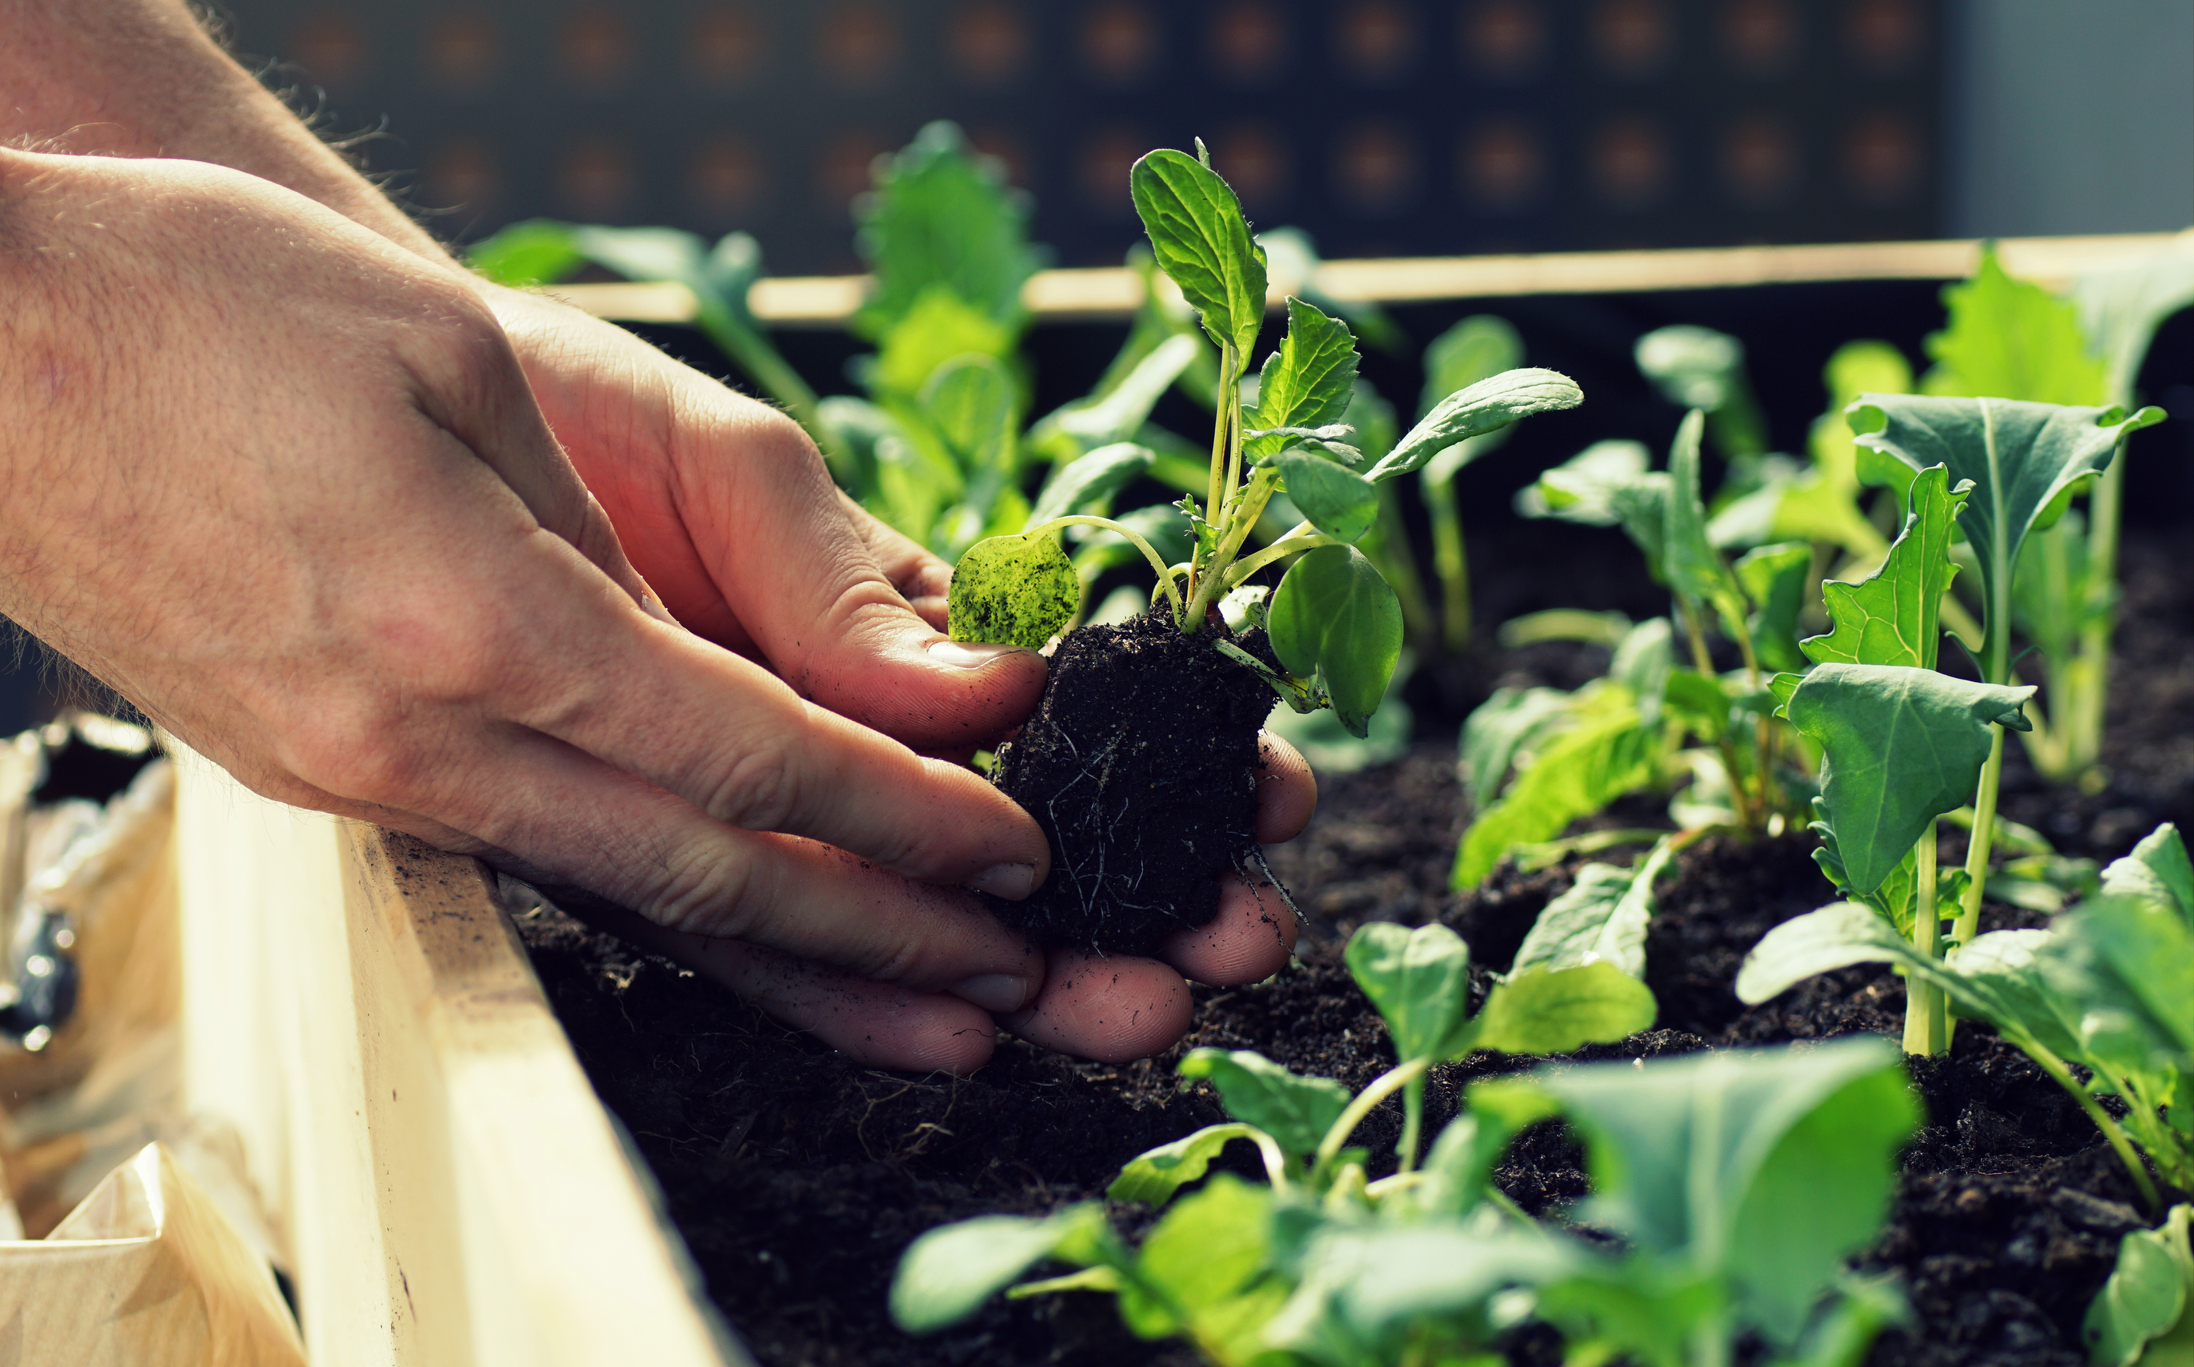 7 Gardening Tips to Save You Time and Money